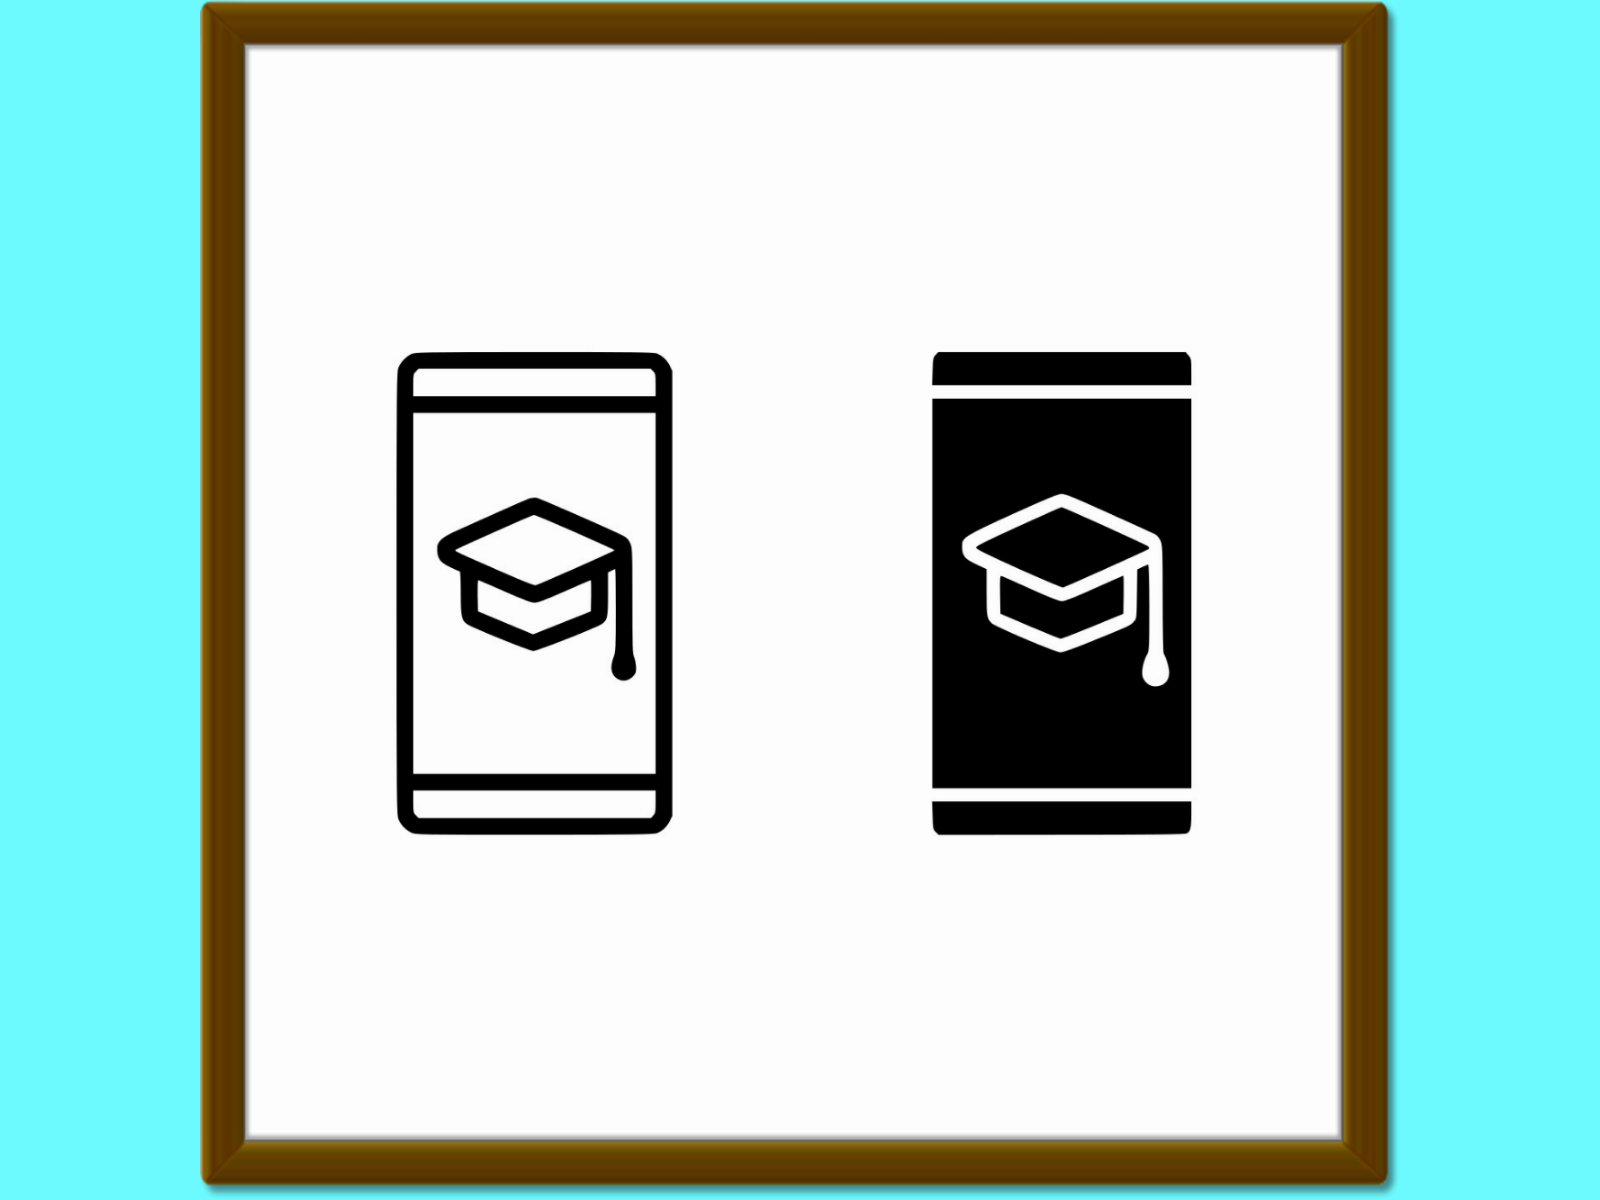 Download Free Mobile Learning Line And Glyph Icon E Le Graphic By Anrasoft for Cricut Explore, Silhouette and other cutting machines.